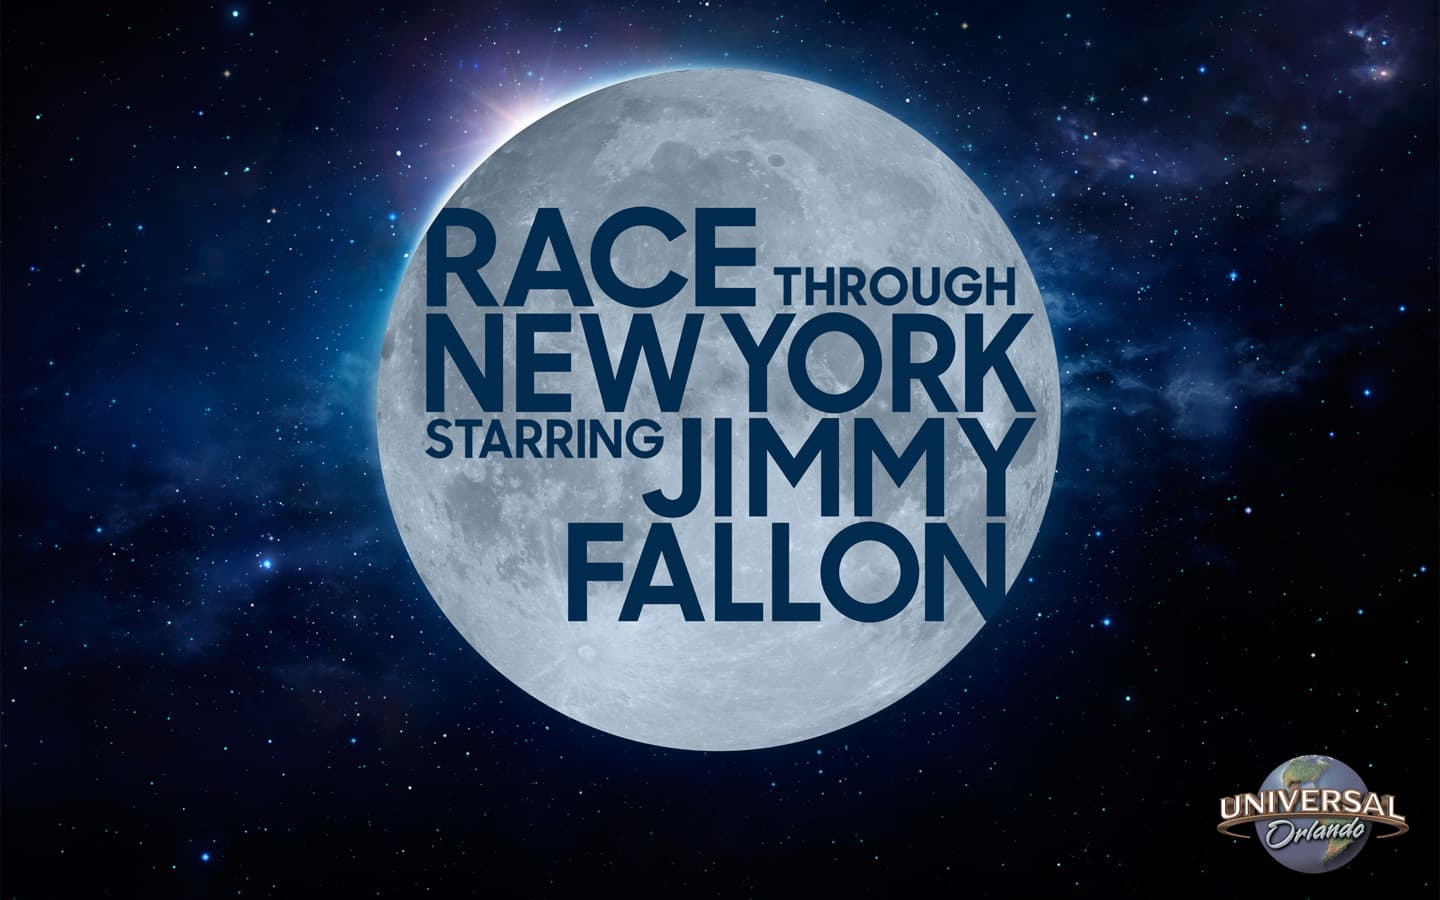 Race through New York starring Jimmy Fallon coming in 2017